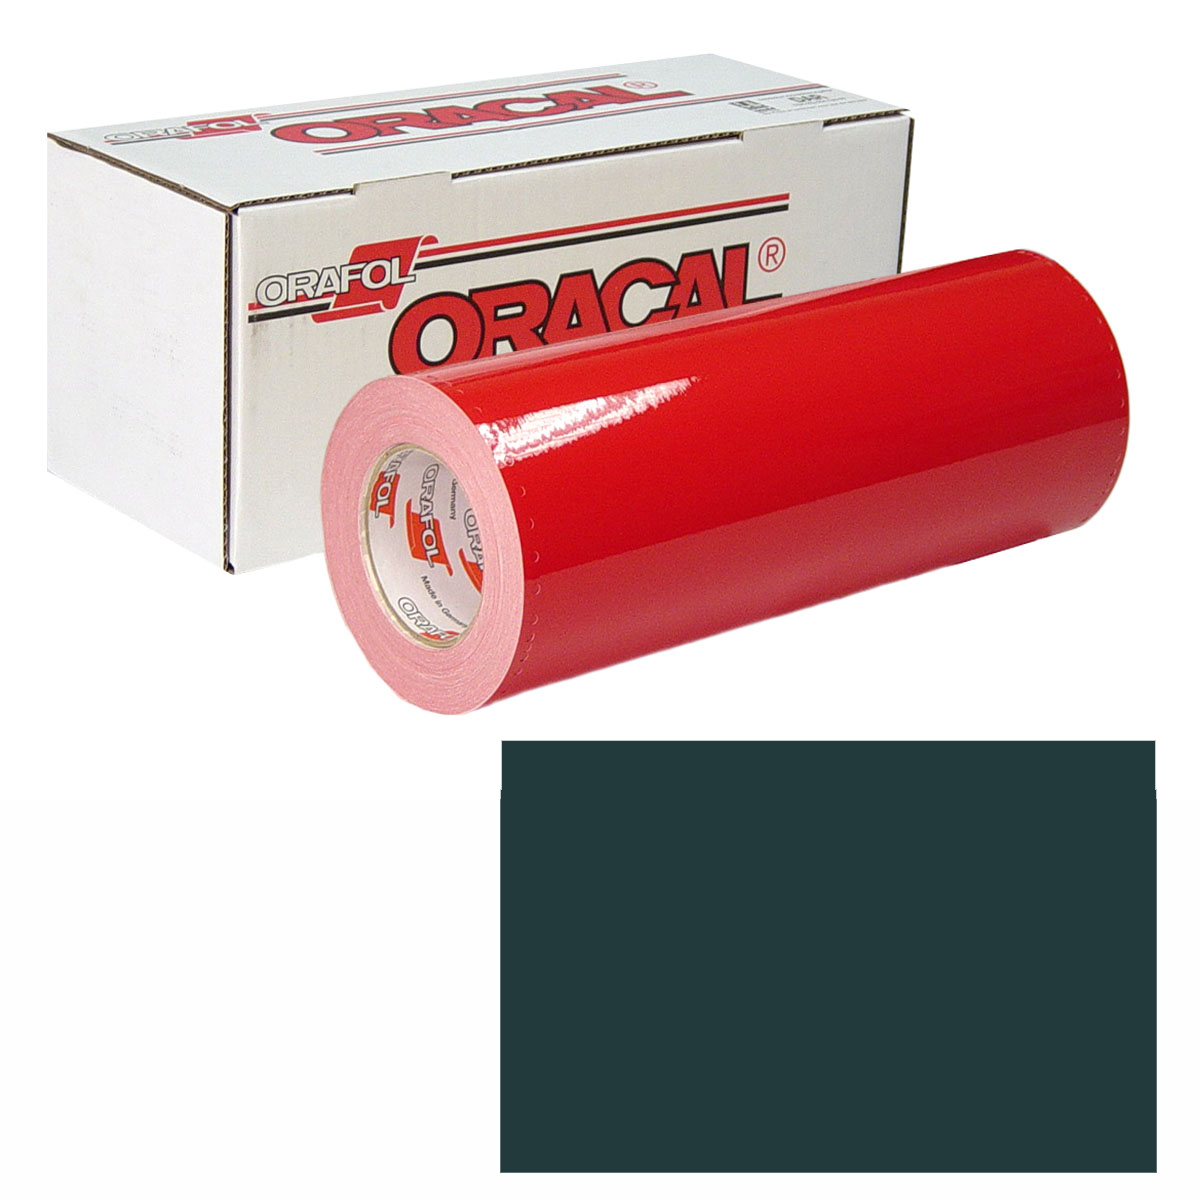 ORACAL 951M 15In X 50Yd 673 Jade Metallic